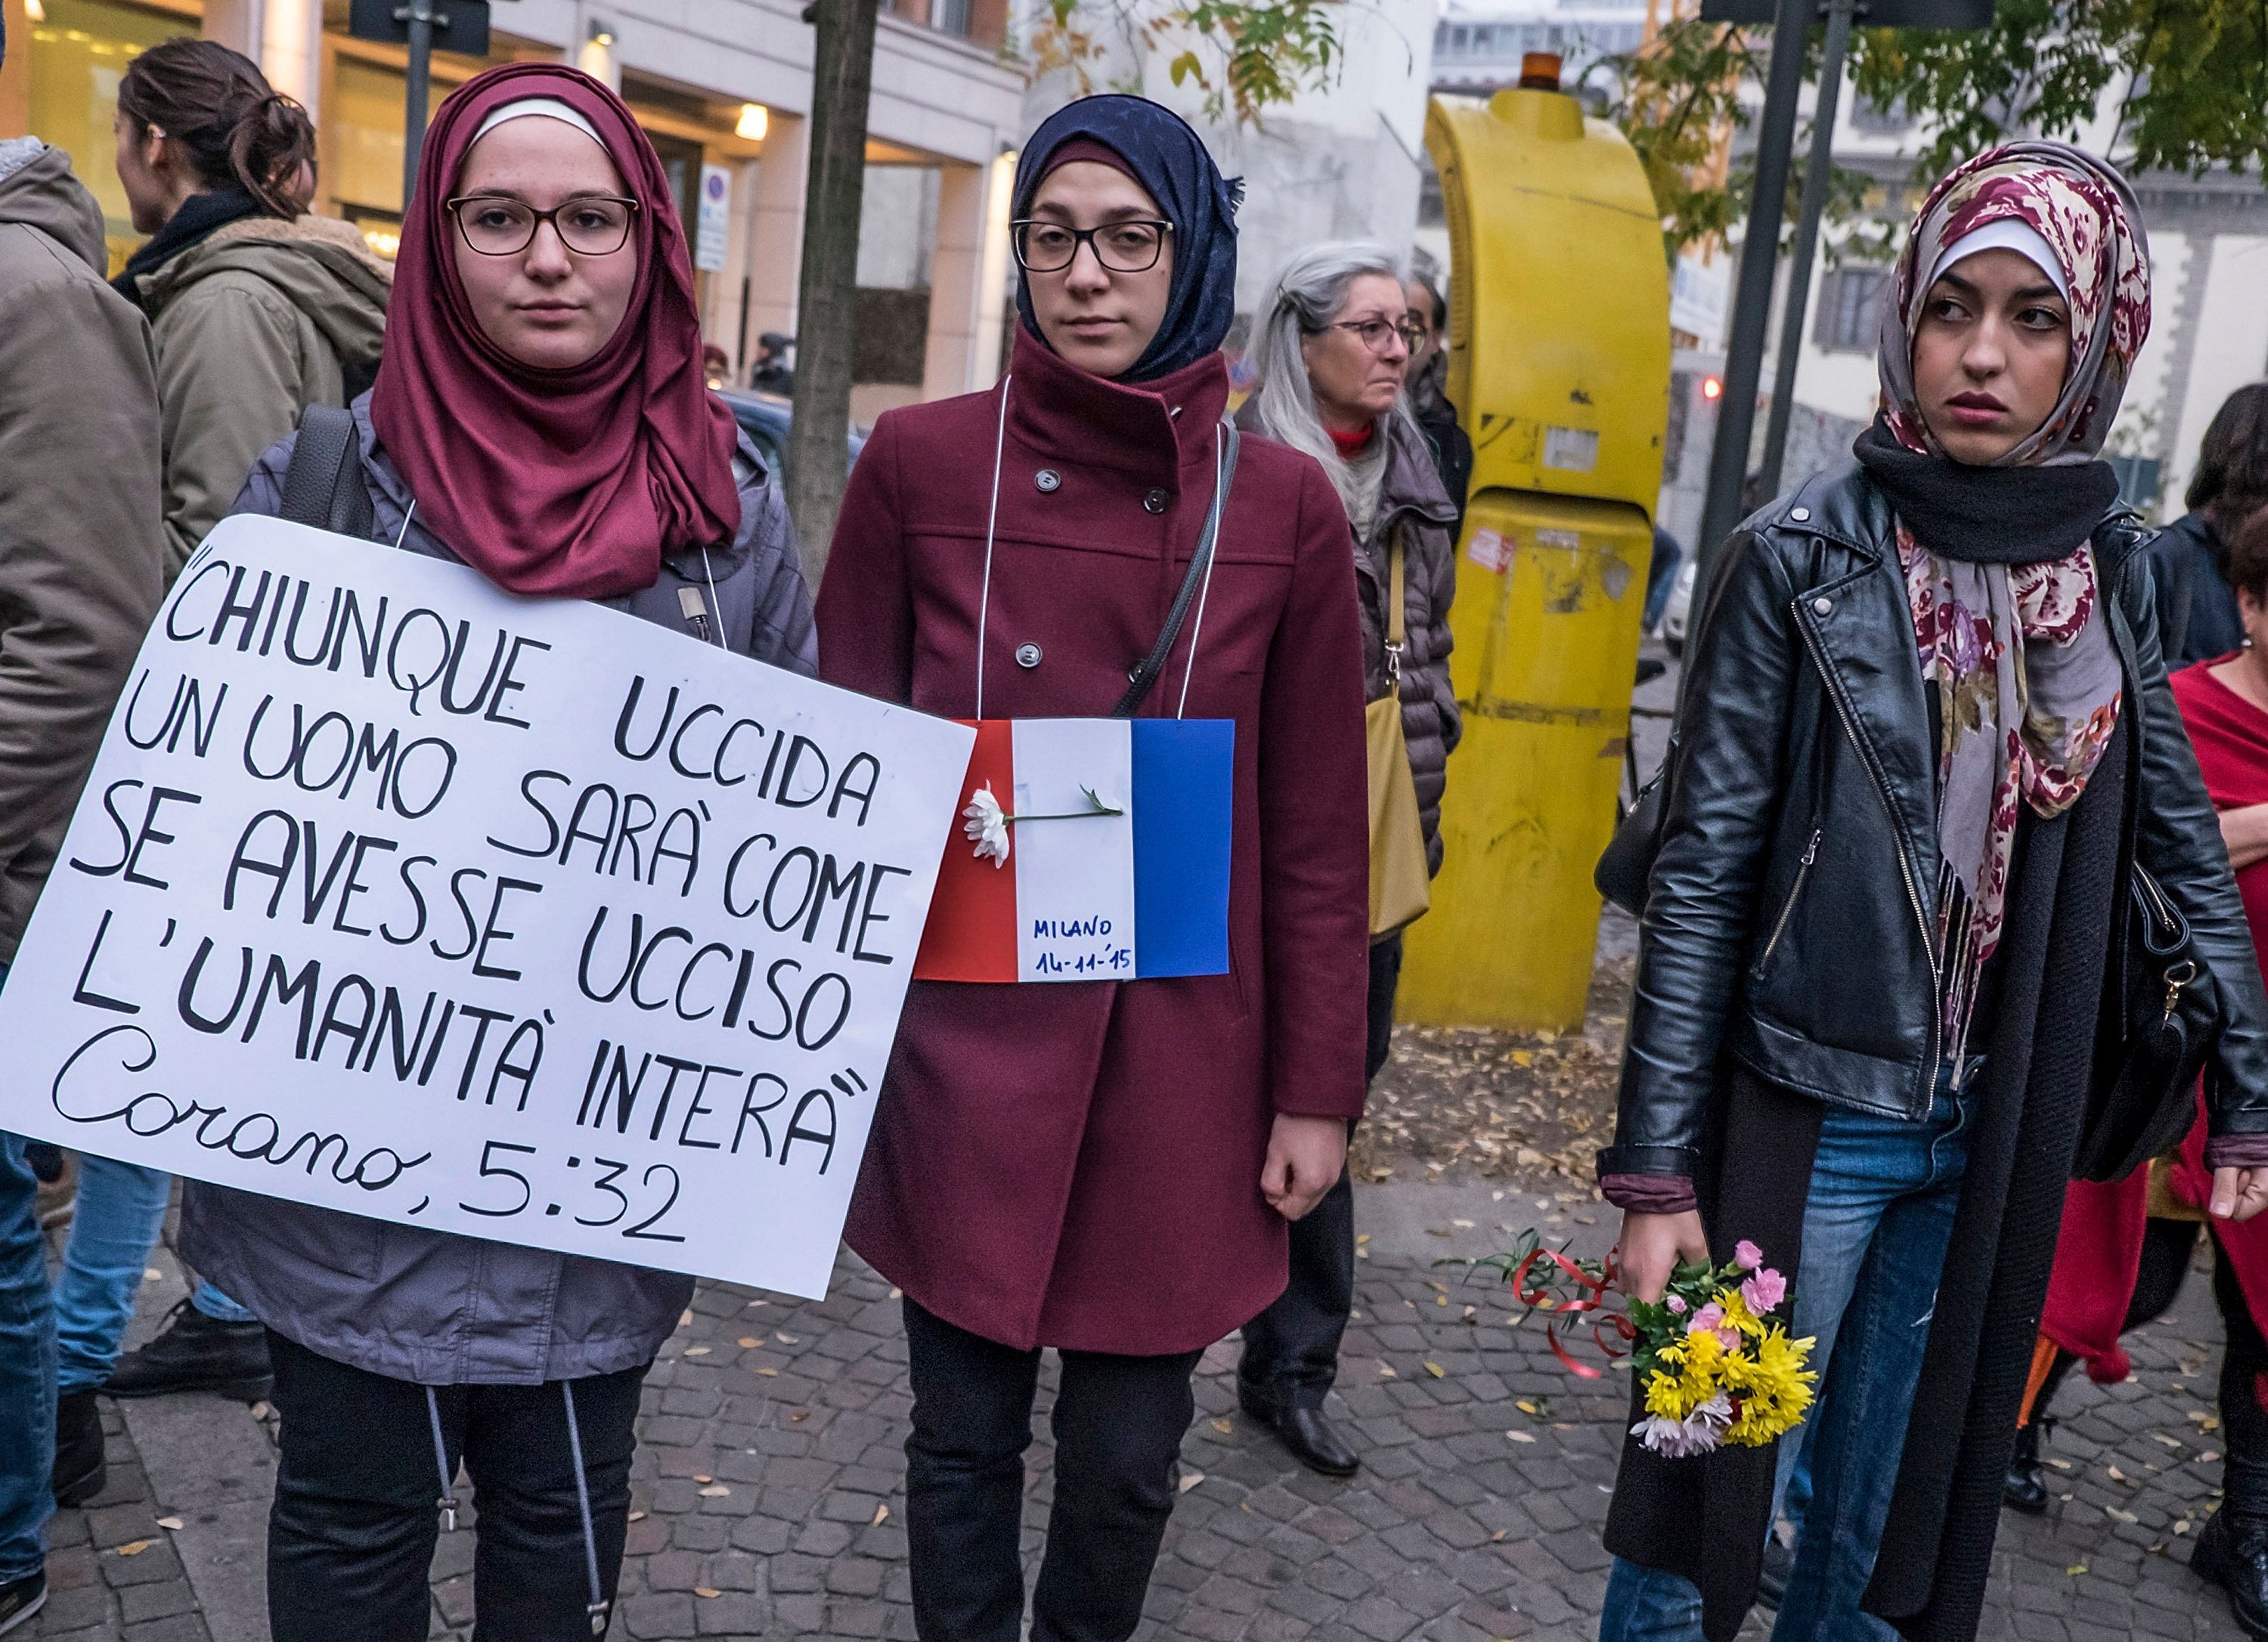 MILAN, ITALY - NOVEMBER 14:  Muslim women hold a sign with a writing from the Coran during the service in the city centre on November 14, 2015 in Milan, Italy. In different cities there have been services to mourn the victims of attacks last night in Paris that left at least 120 people dead across the French capital. The Islamic State (IS) has claimed responsibility for the attacks that were carried out by at least eight terrorist.  (Photo by Awakening/Getty Images)